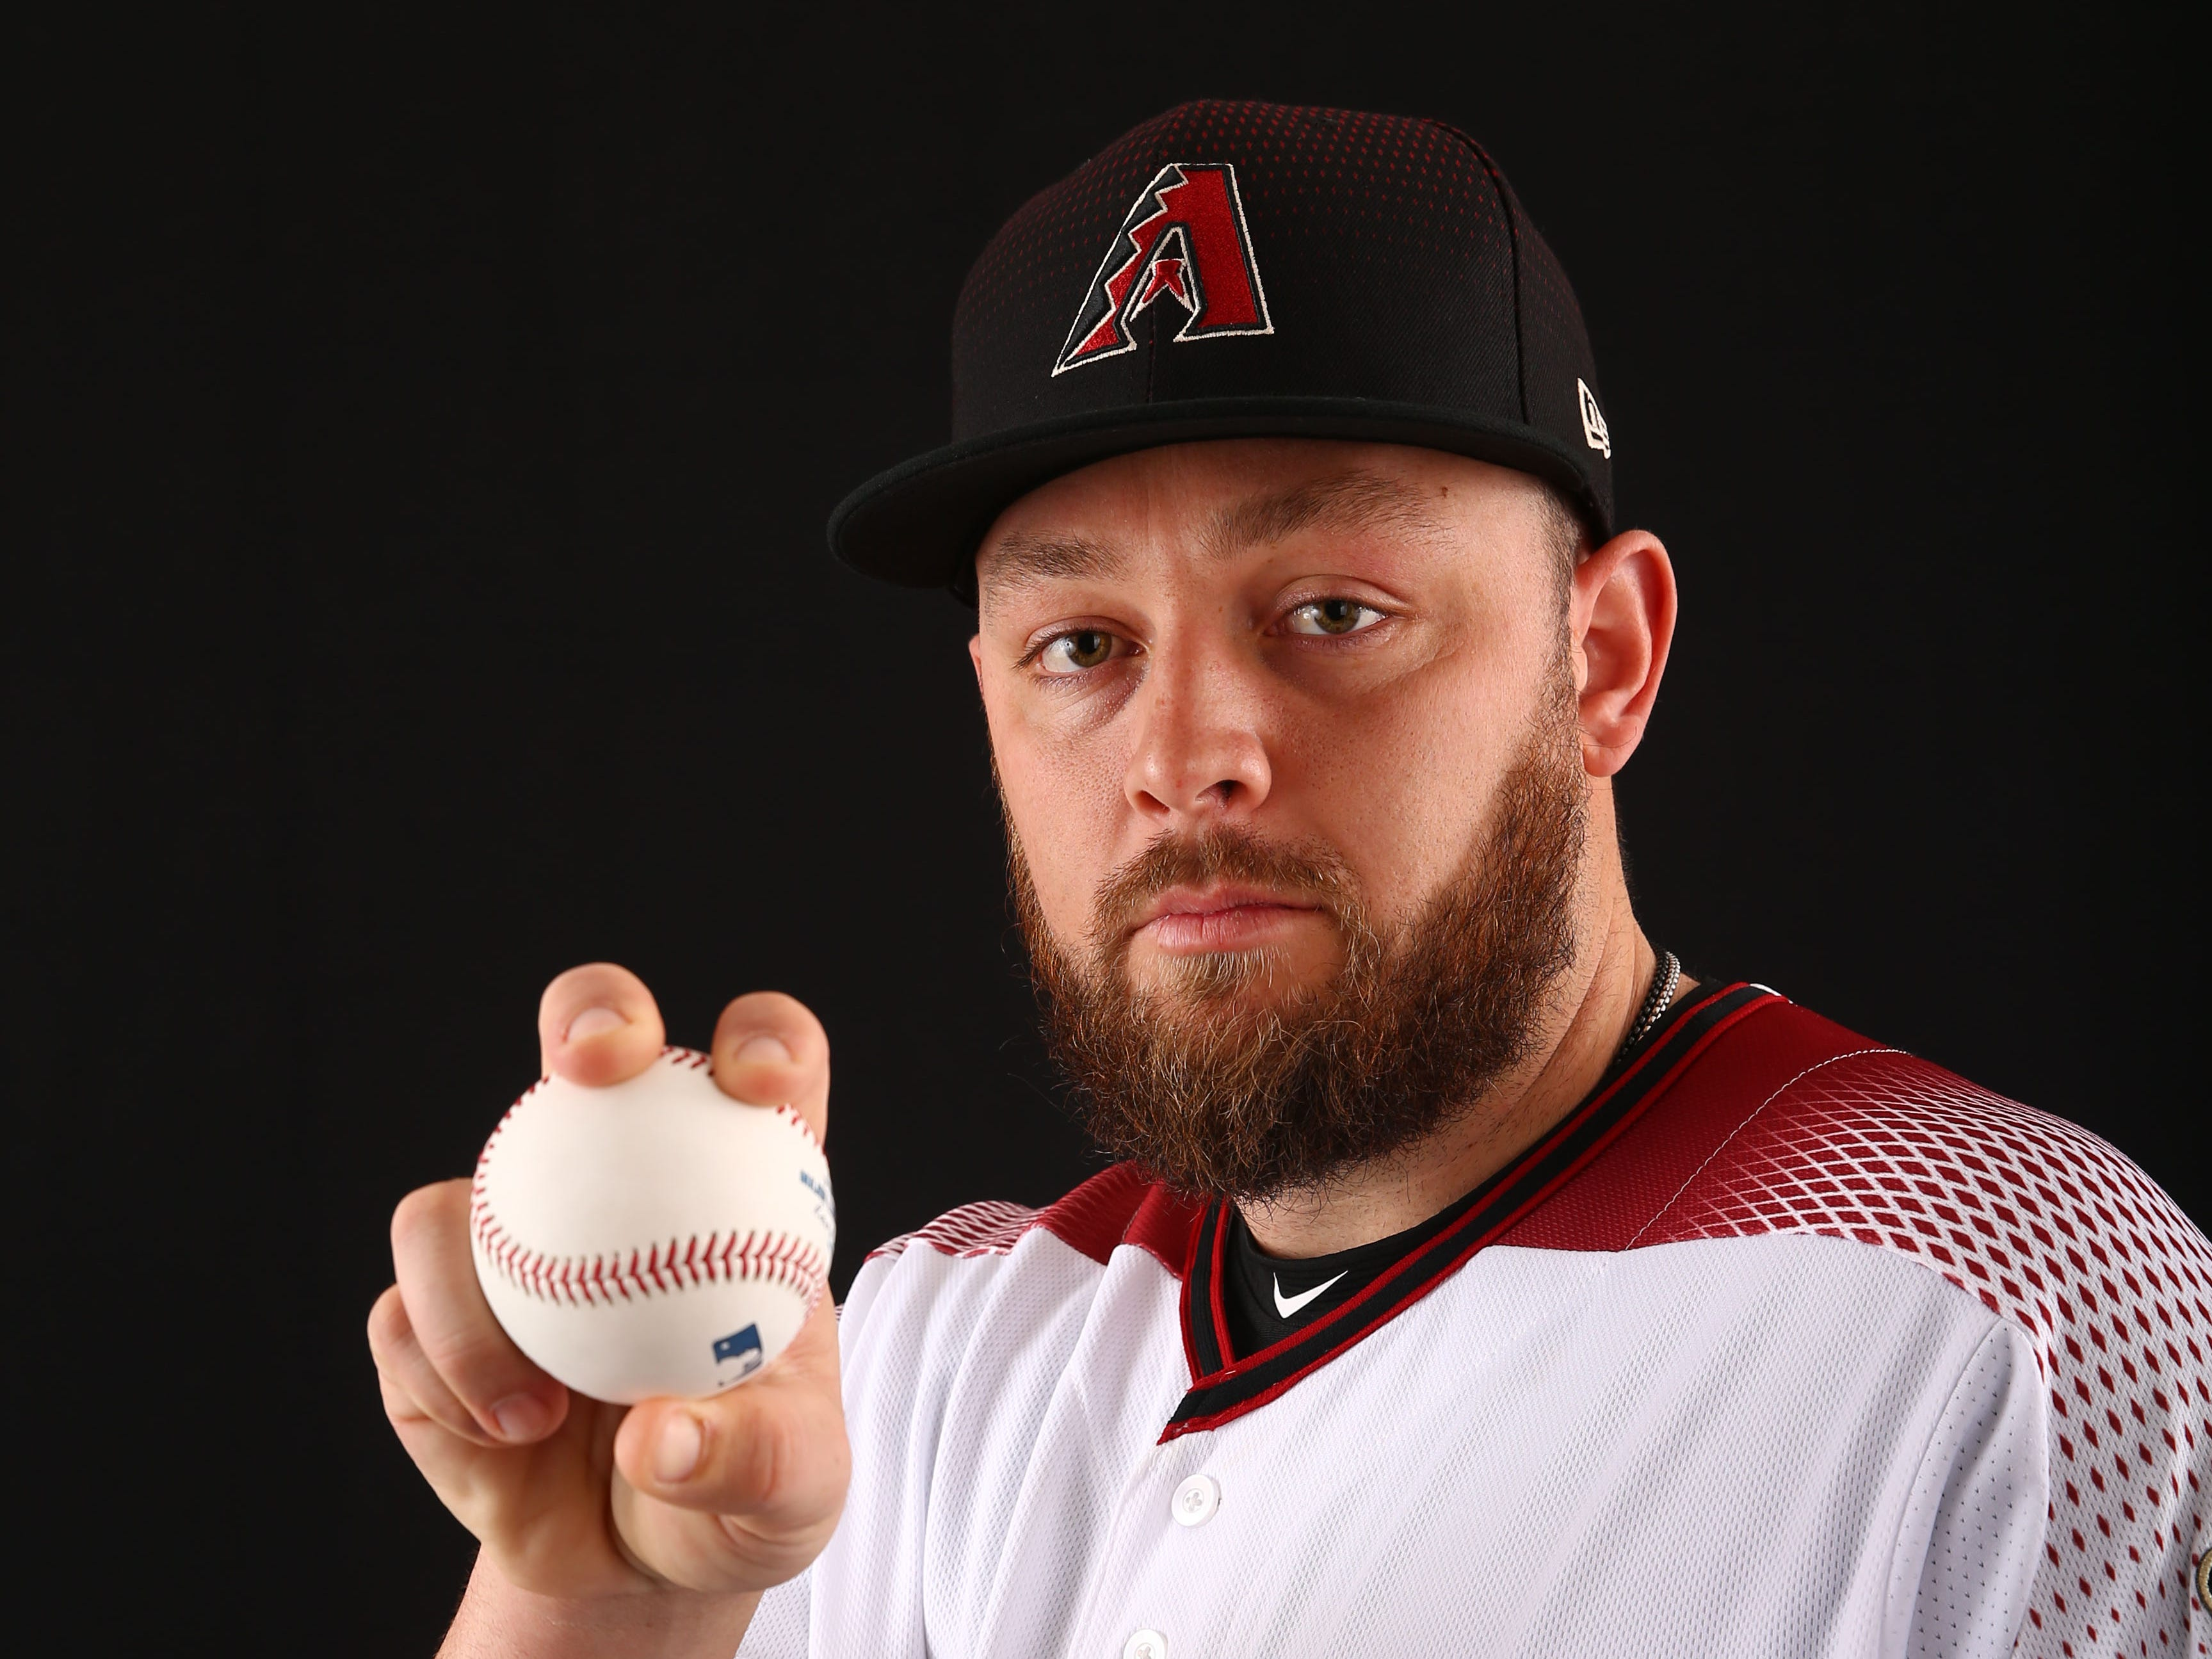 Joey Krehbiel of the Arizona Diamondbacks poses for a photo during the annual Spring Training Photo Day on Feb. 20 at Salt River Fields in Scottsdale, Ariz.